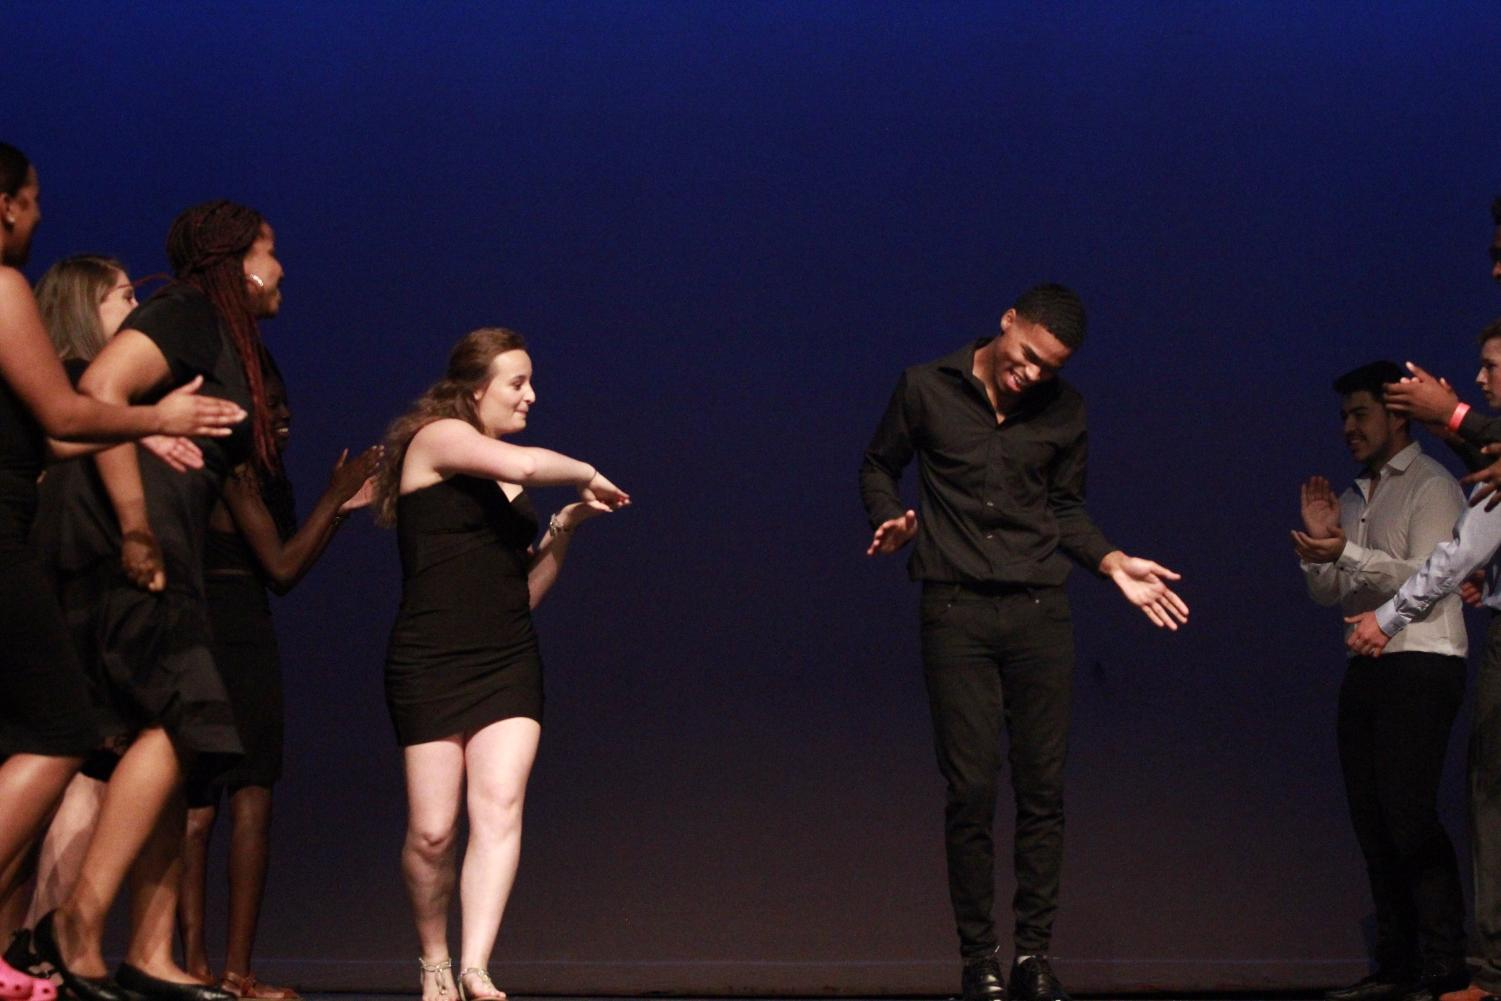 Senior+Lauren+Flandrau+and+Dejion+Martin+dancing+their+way+down+the+stage+during+the+introduction+group+dace+of+Mr.+Watkins+Mill.